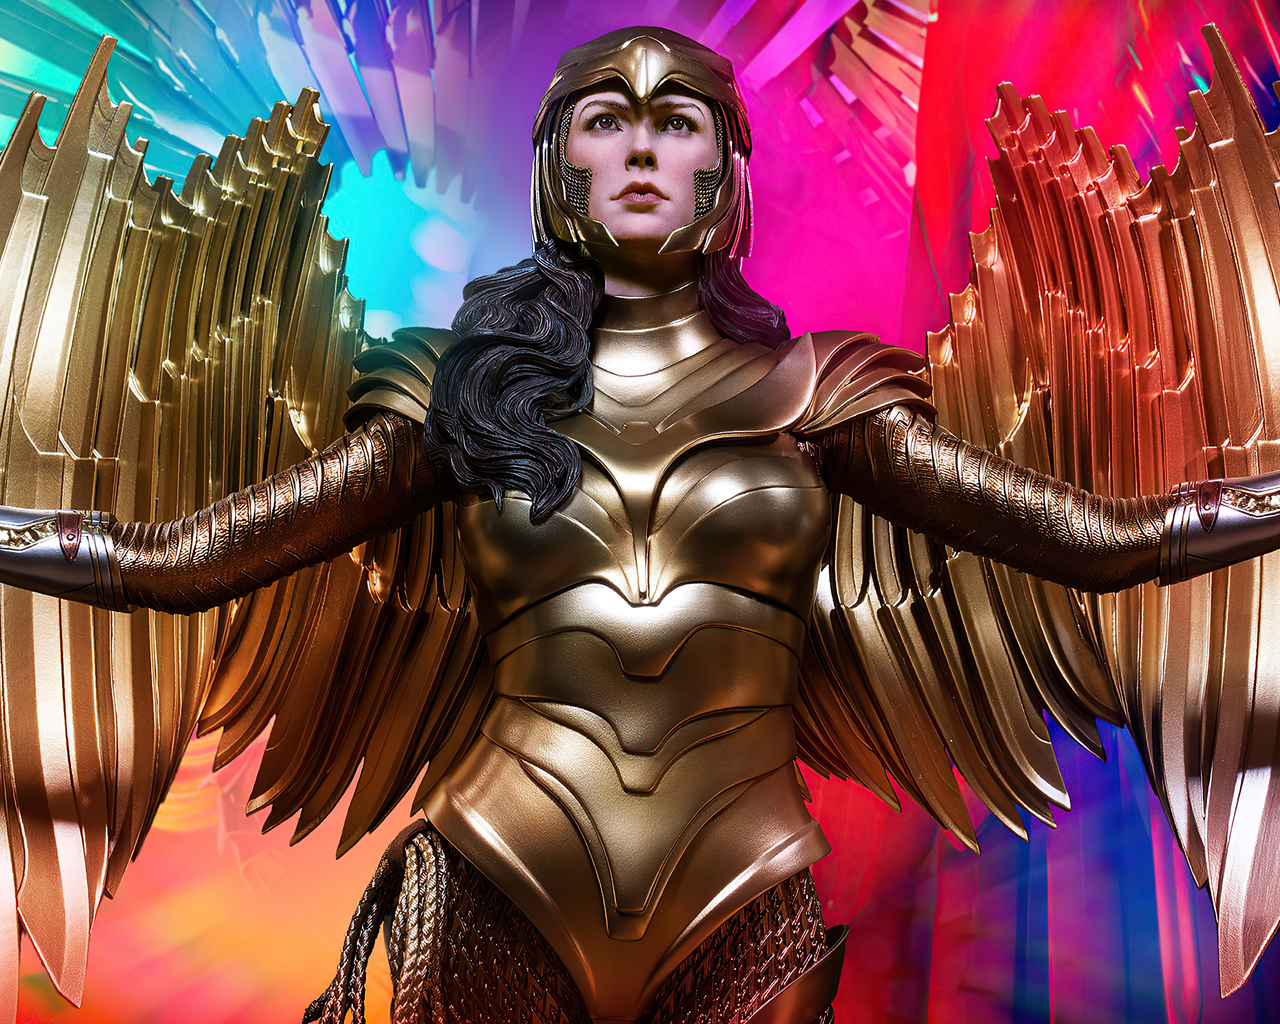 wonder-woman-1984-wings-2020-8c.jpg